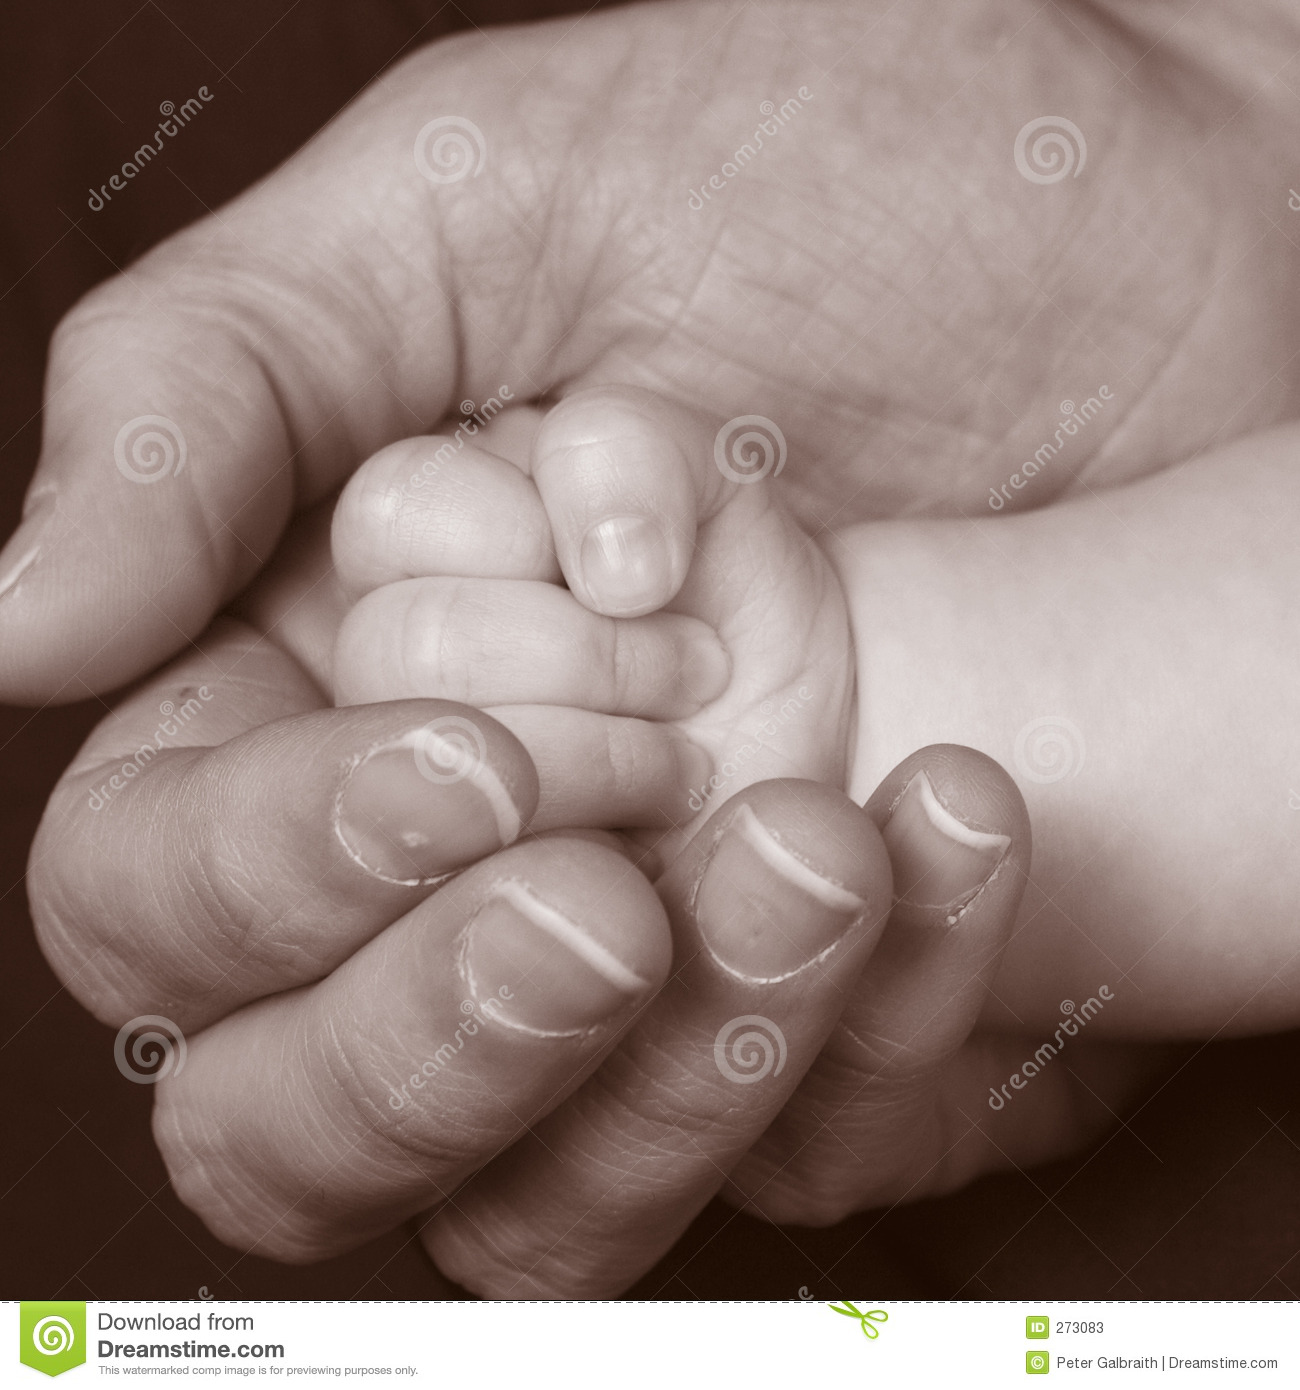 Baby Hand 3 Stock Photos - Image: 273083